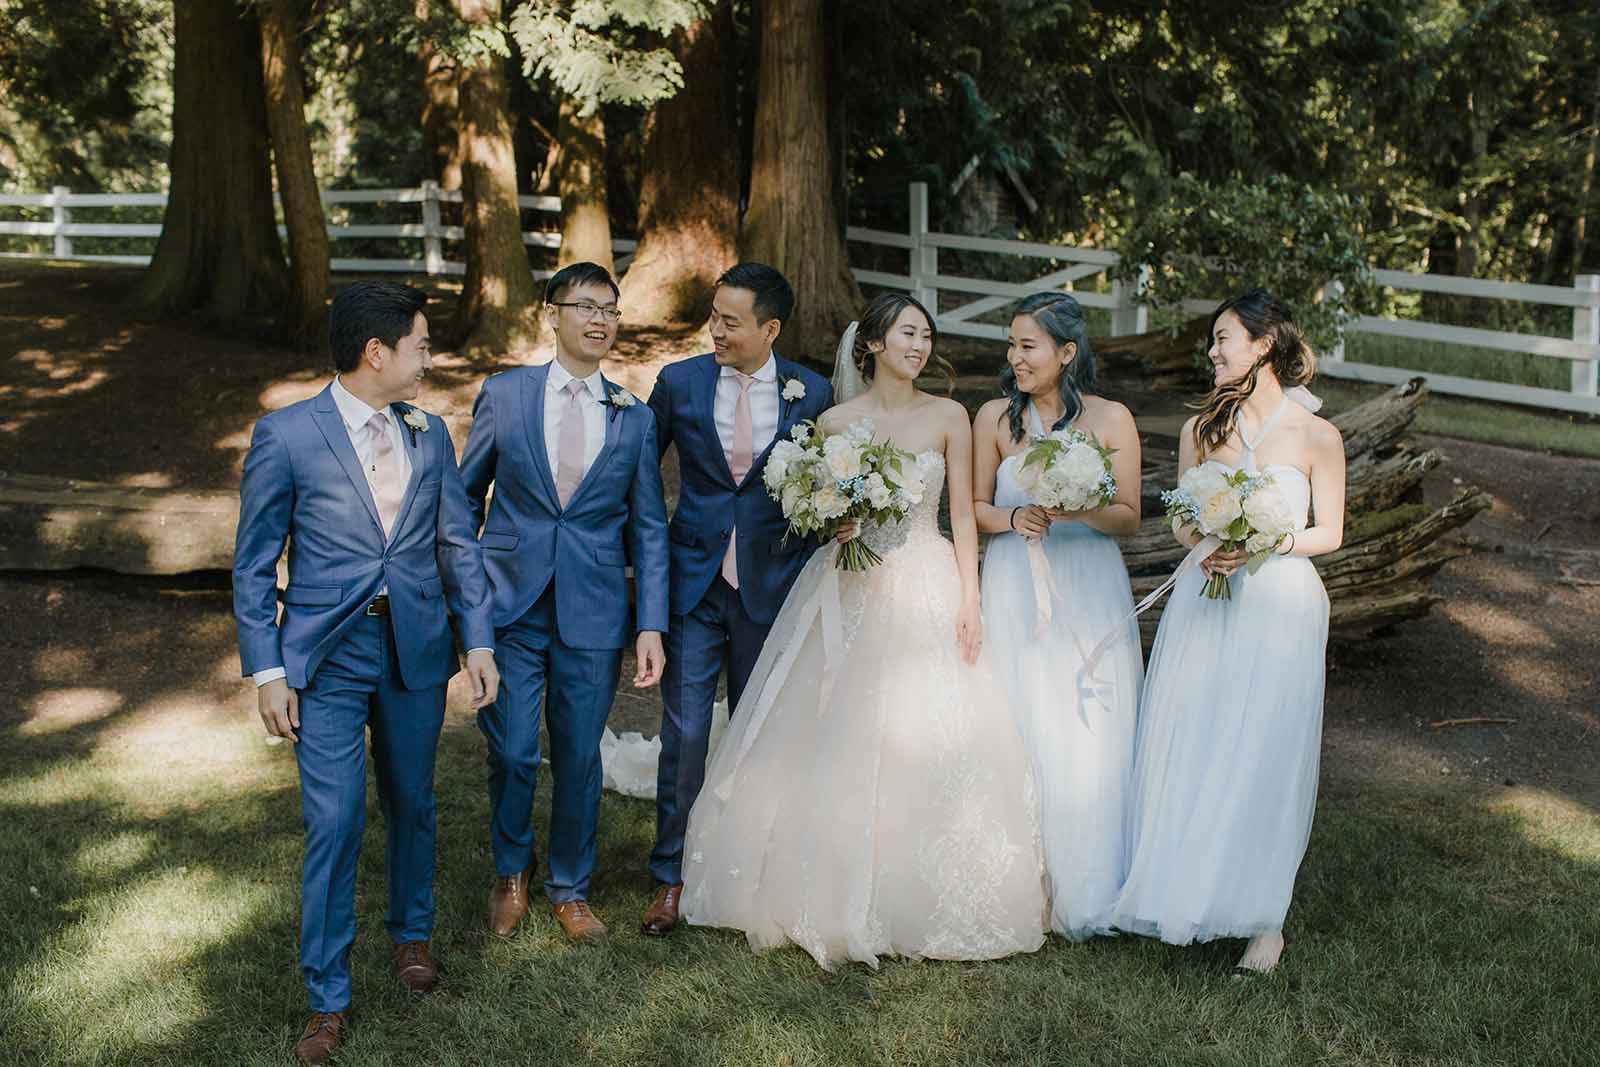 Bridal party in shades of blue at Chateau Lill.